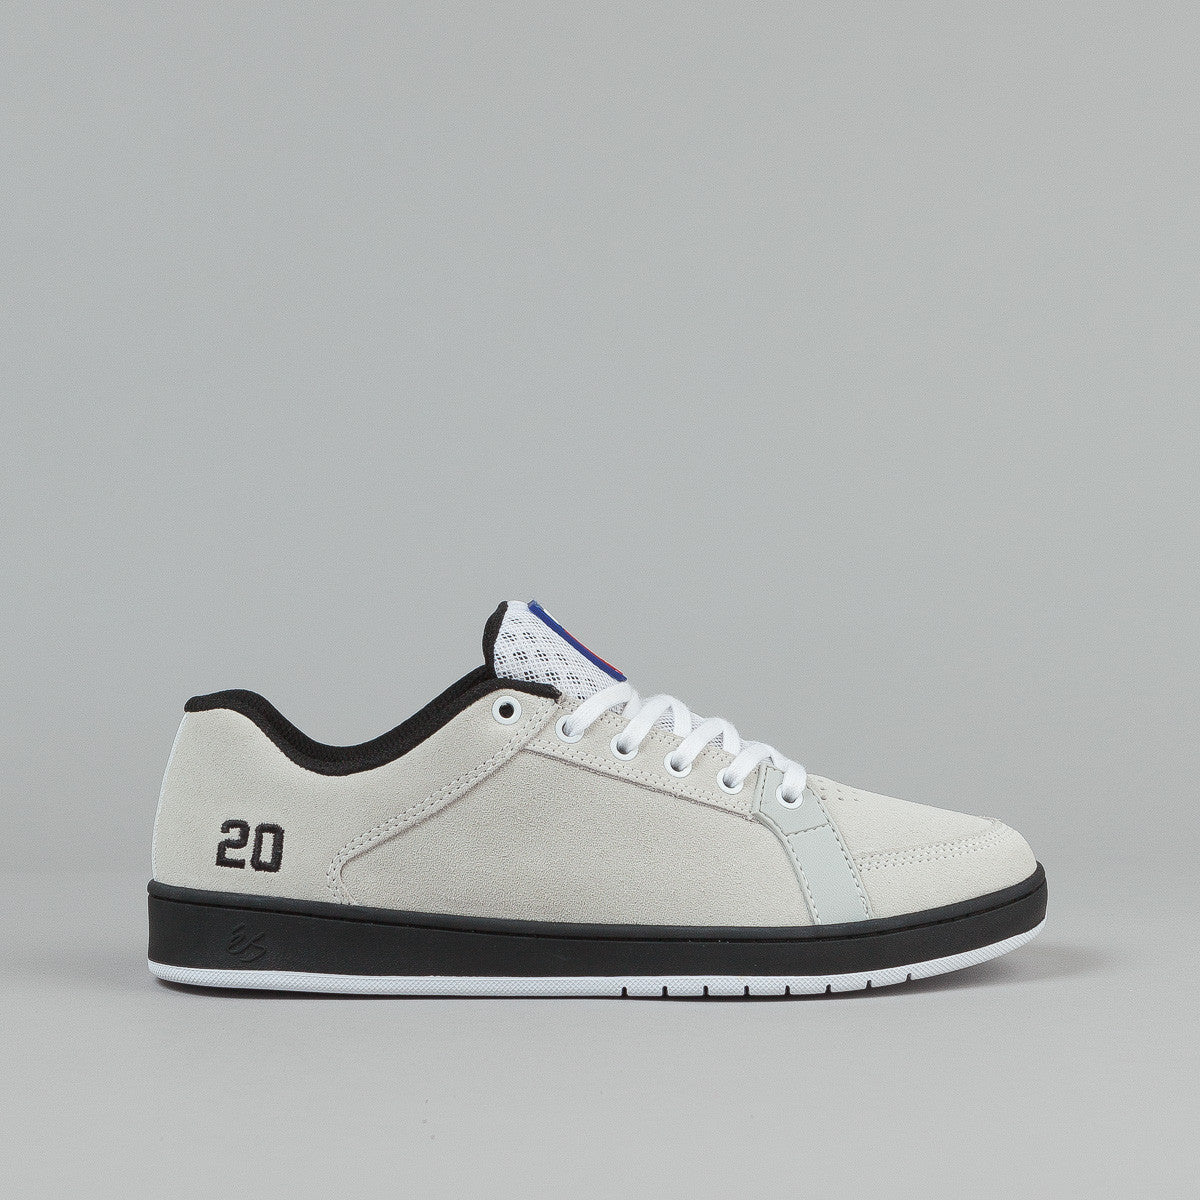 ĩS Skateboarding Sal 20 Shoes - White / Black